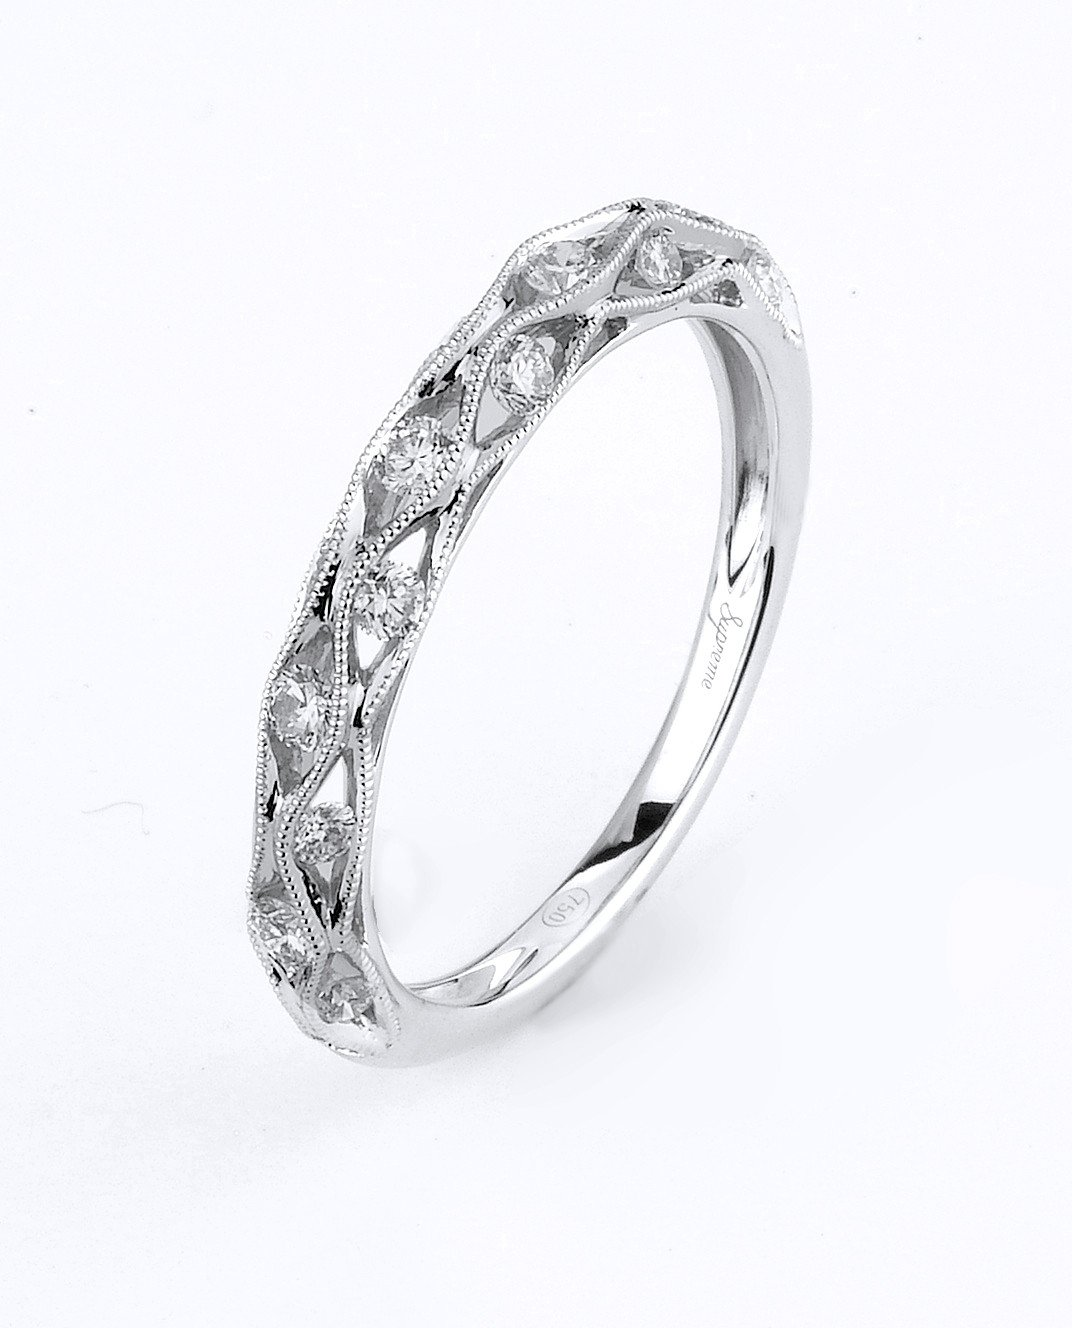 Supreme - SJU1300RB, Wedding Band, Supreme Jewelry - Birmingham Jewelry